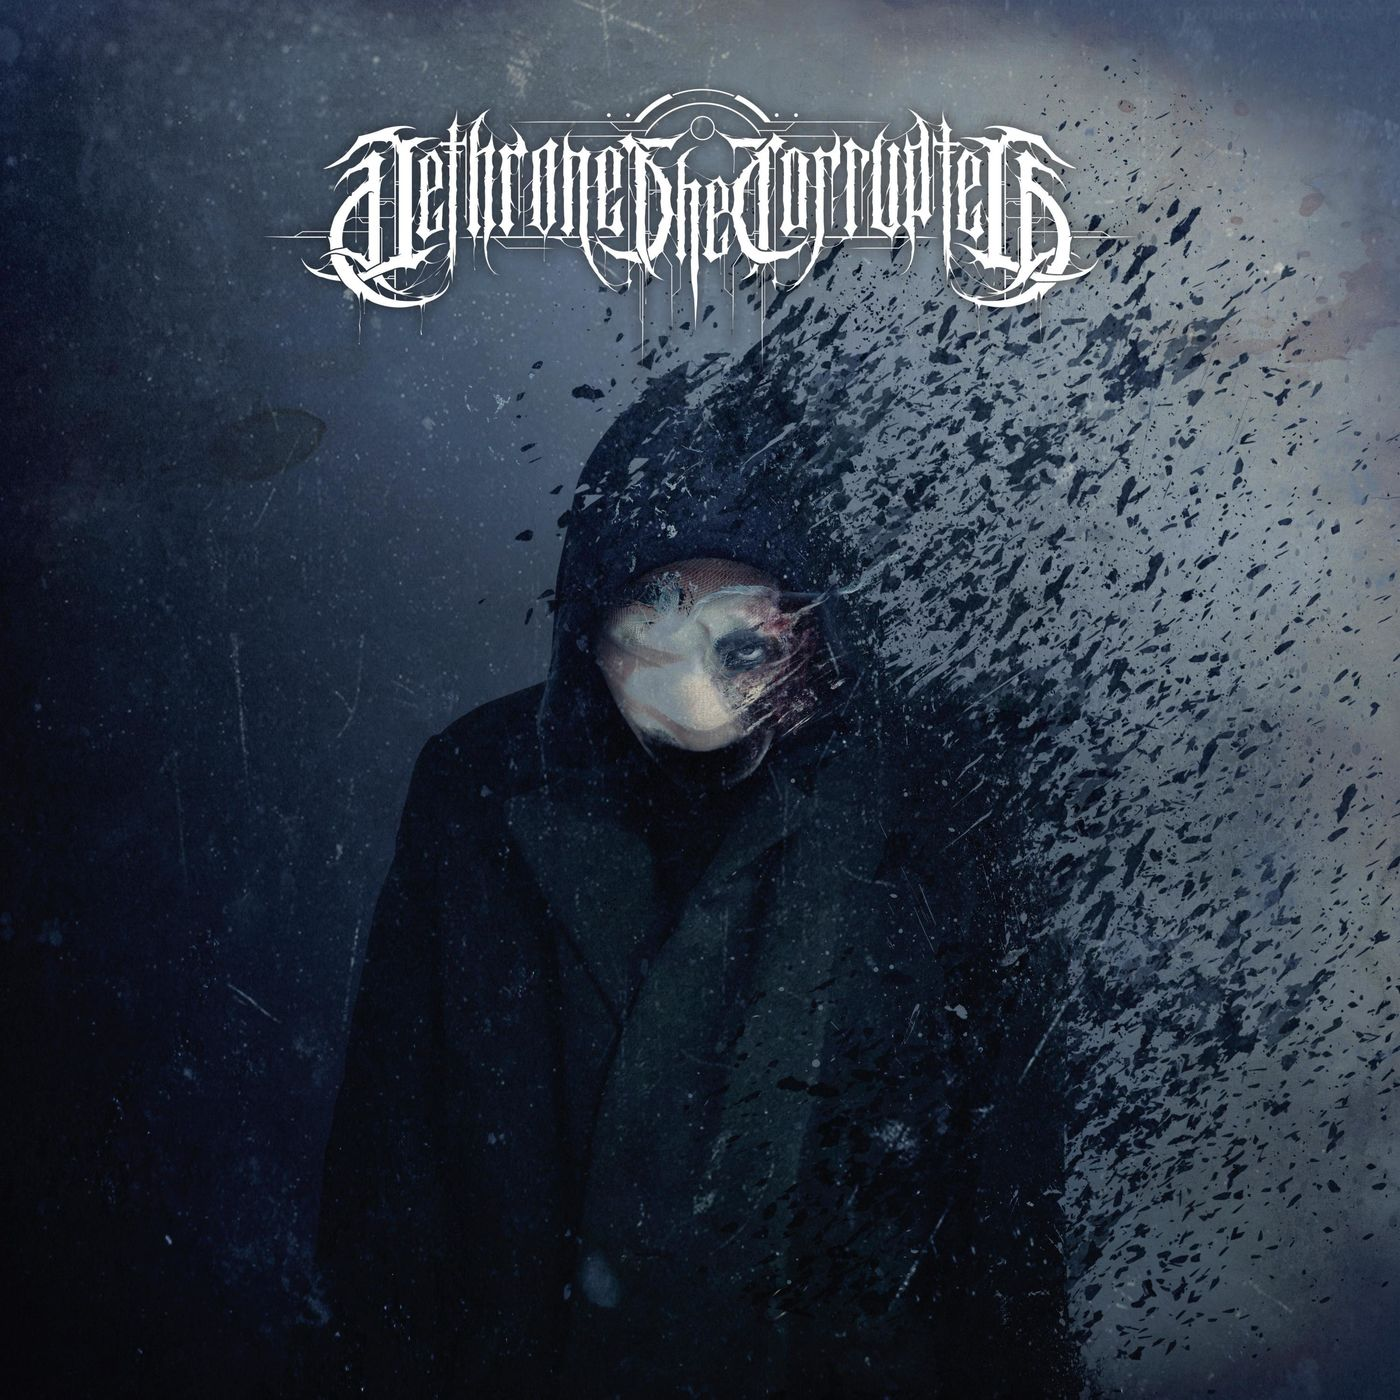 Dethrone the Corrupted - Amidst A Thriving System [single] (2021)